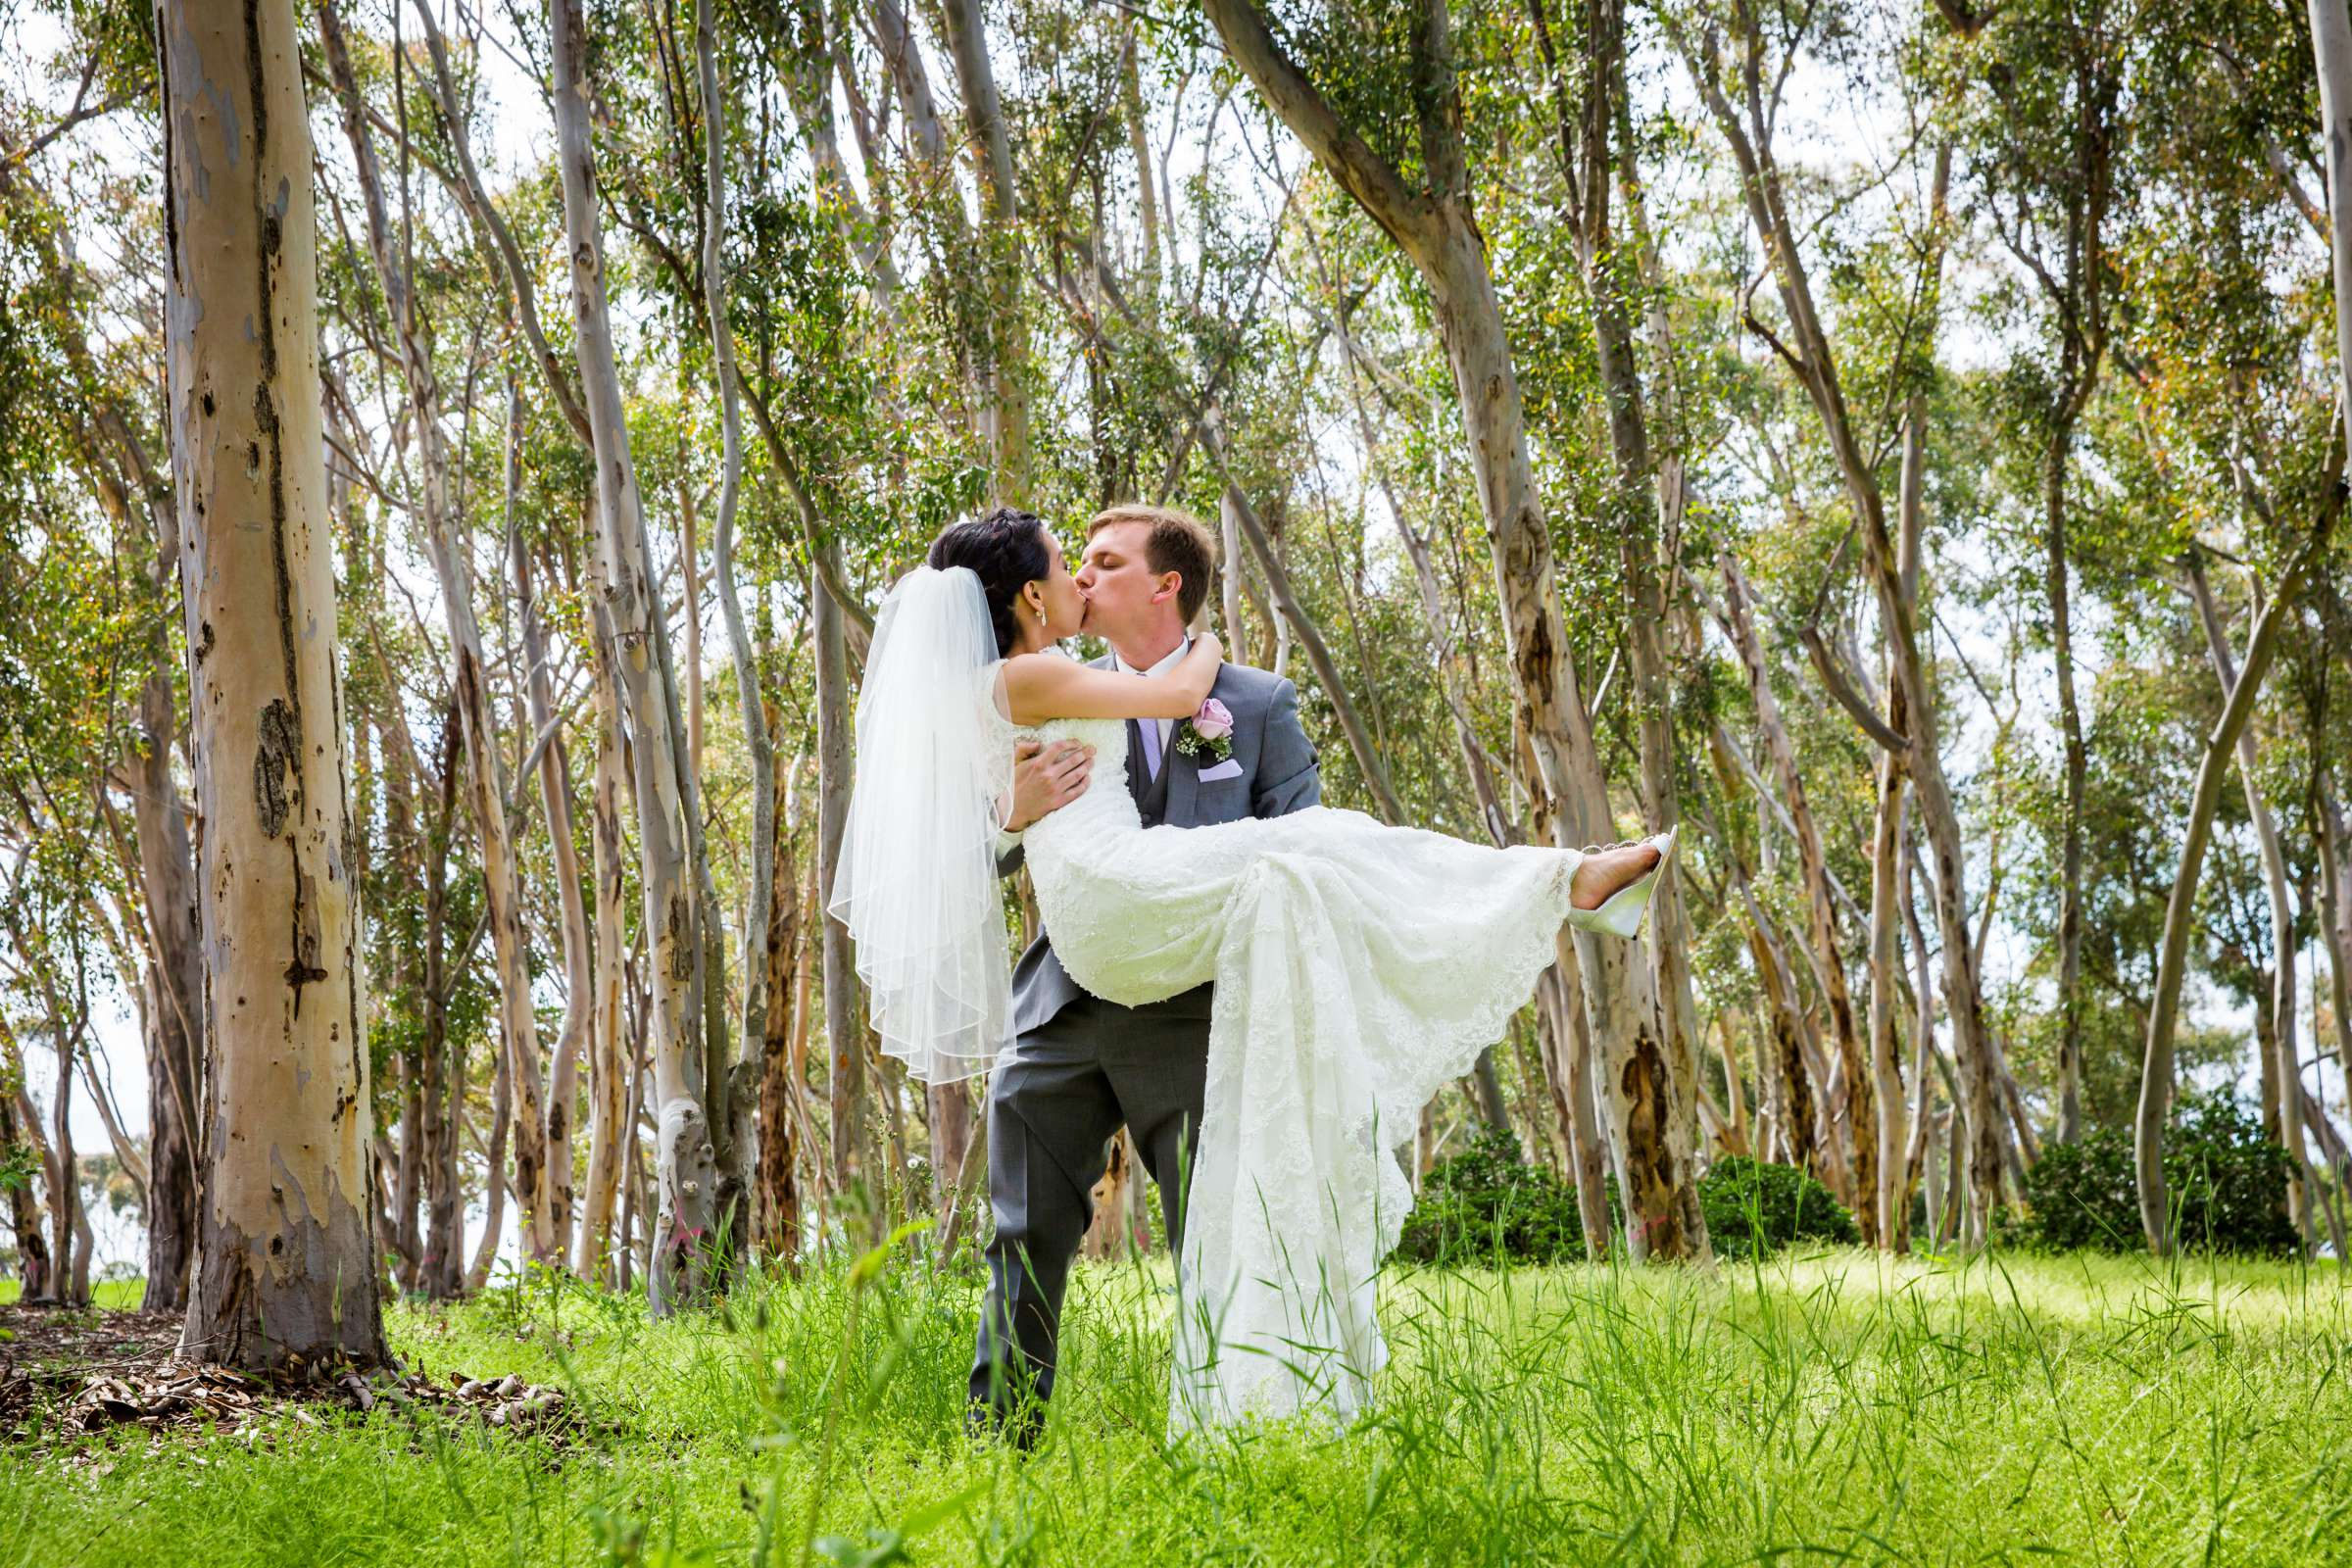 Estancia Wedding coordinated by Holly Kalkin Weddings, Jeanine and Eugene Wedding Photo #10 by True Photography